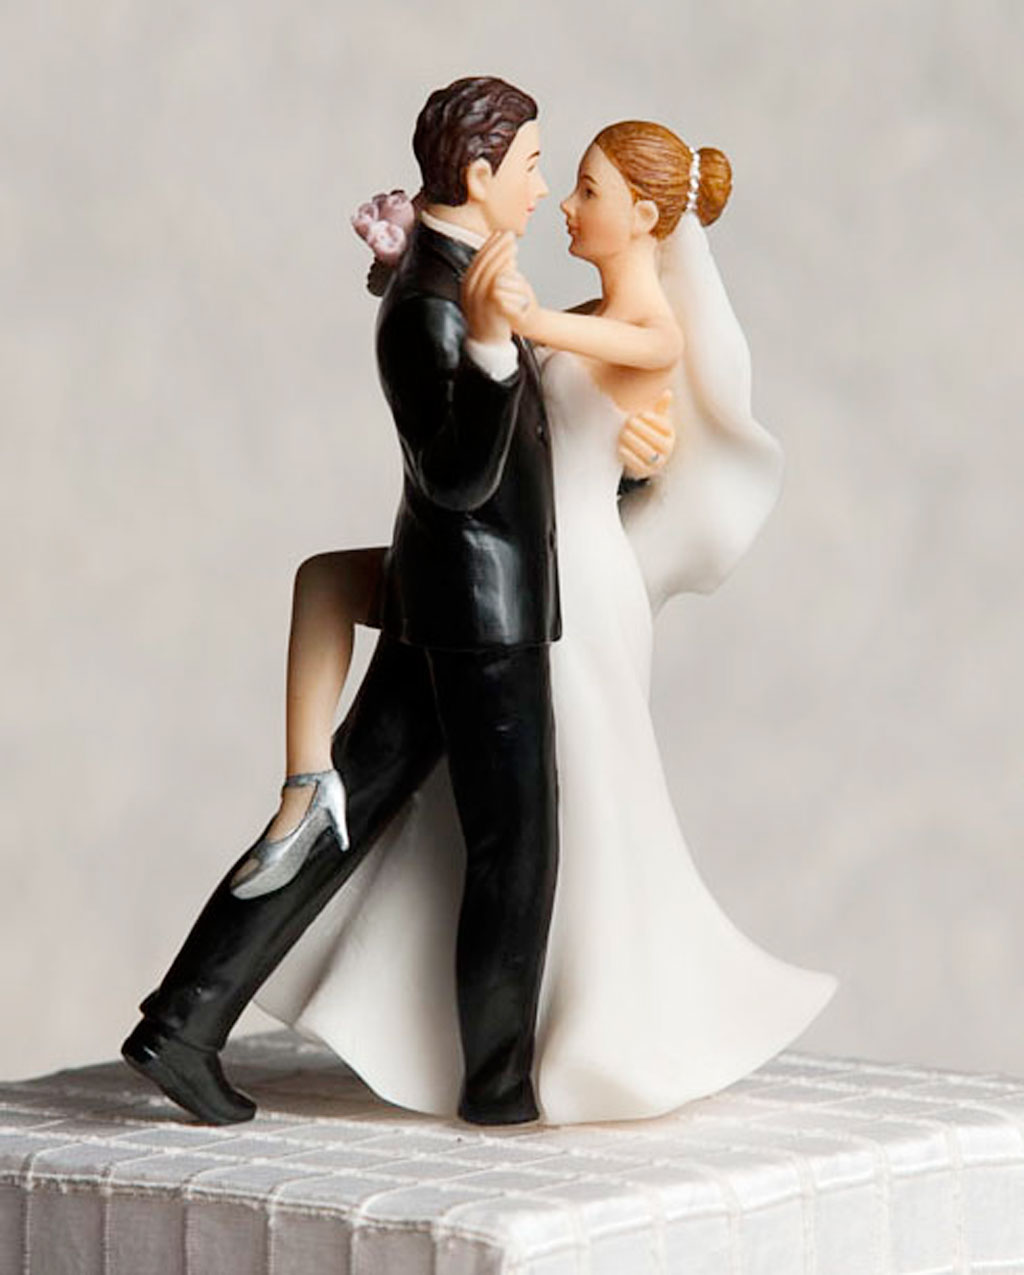 romantic wedding cake toppers wedding cake toppers wedding cake cake 19257